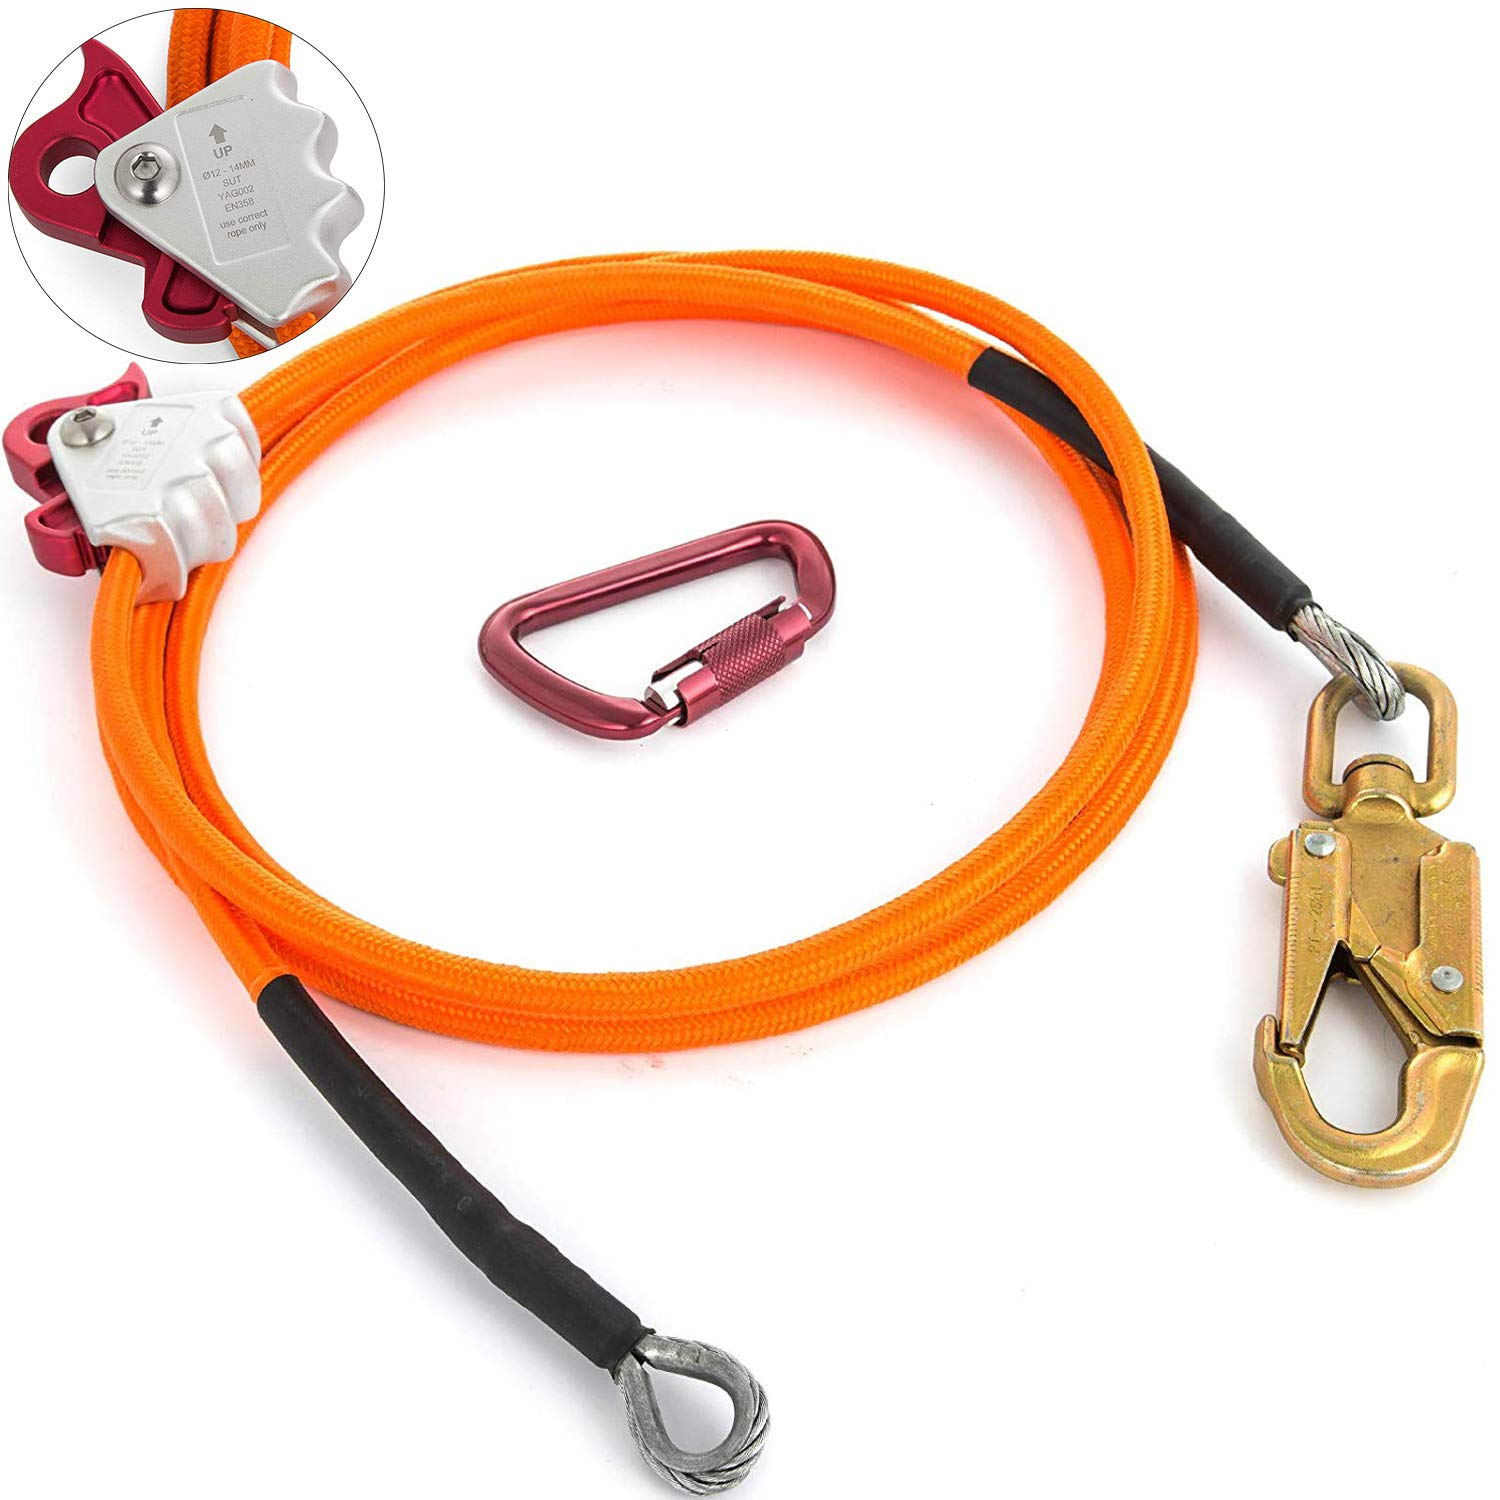 Happybuy Steel Wire Core Flip Line Kit 1/2'' X 8' Wire Core Flipline with Triple Lock Carabiner and Steel Swivel Snap Wire Core Flipline System for Arborists Climbers Tree Climbers (1/2'' X 8')